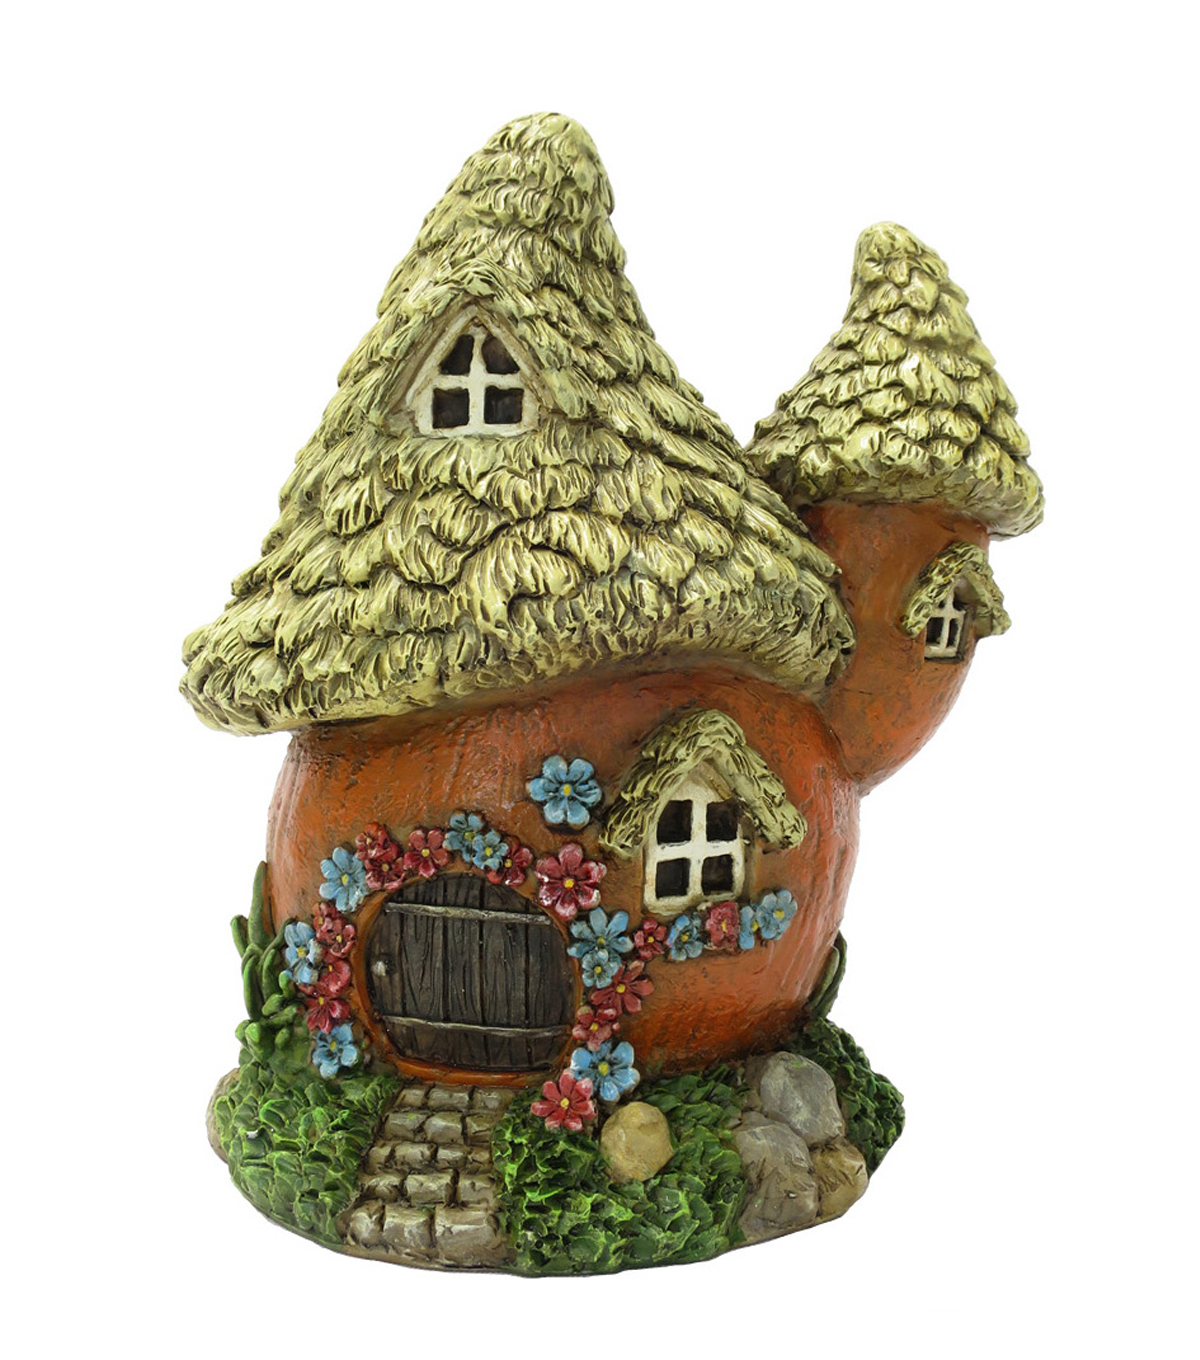 Bloom Room Littles Cobblestone Roof House